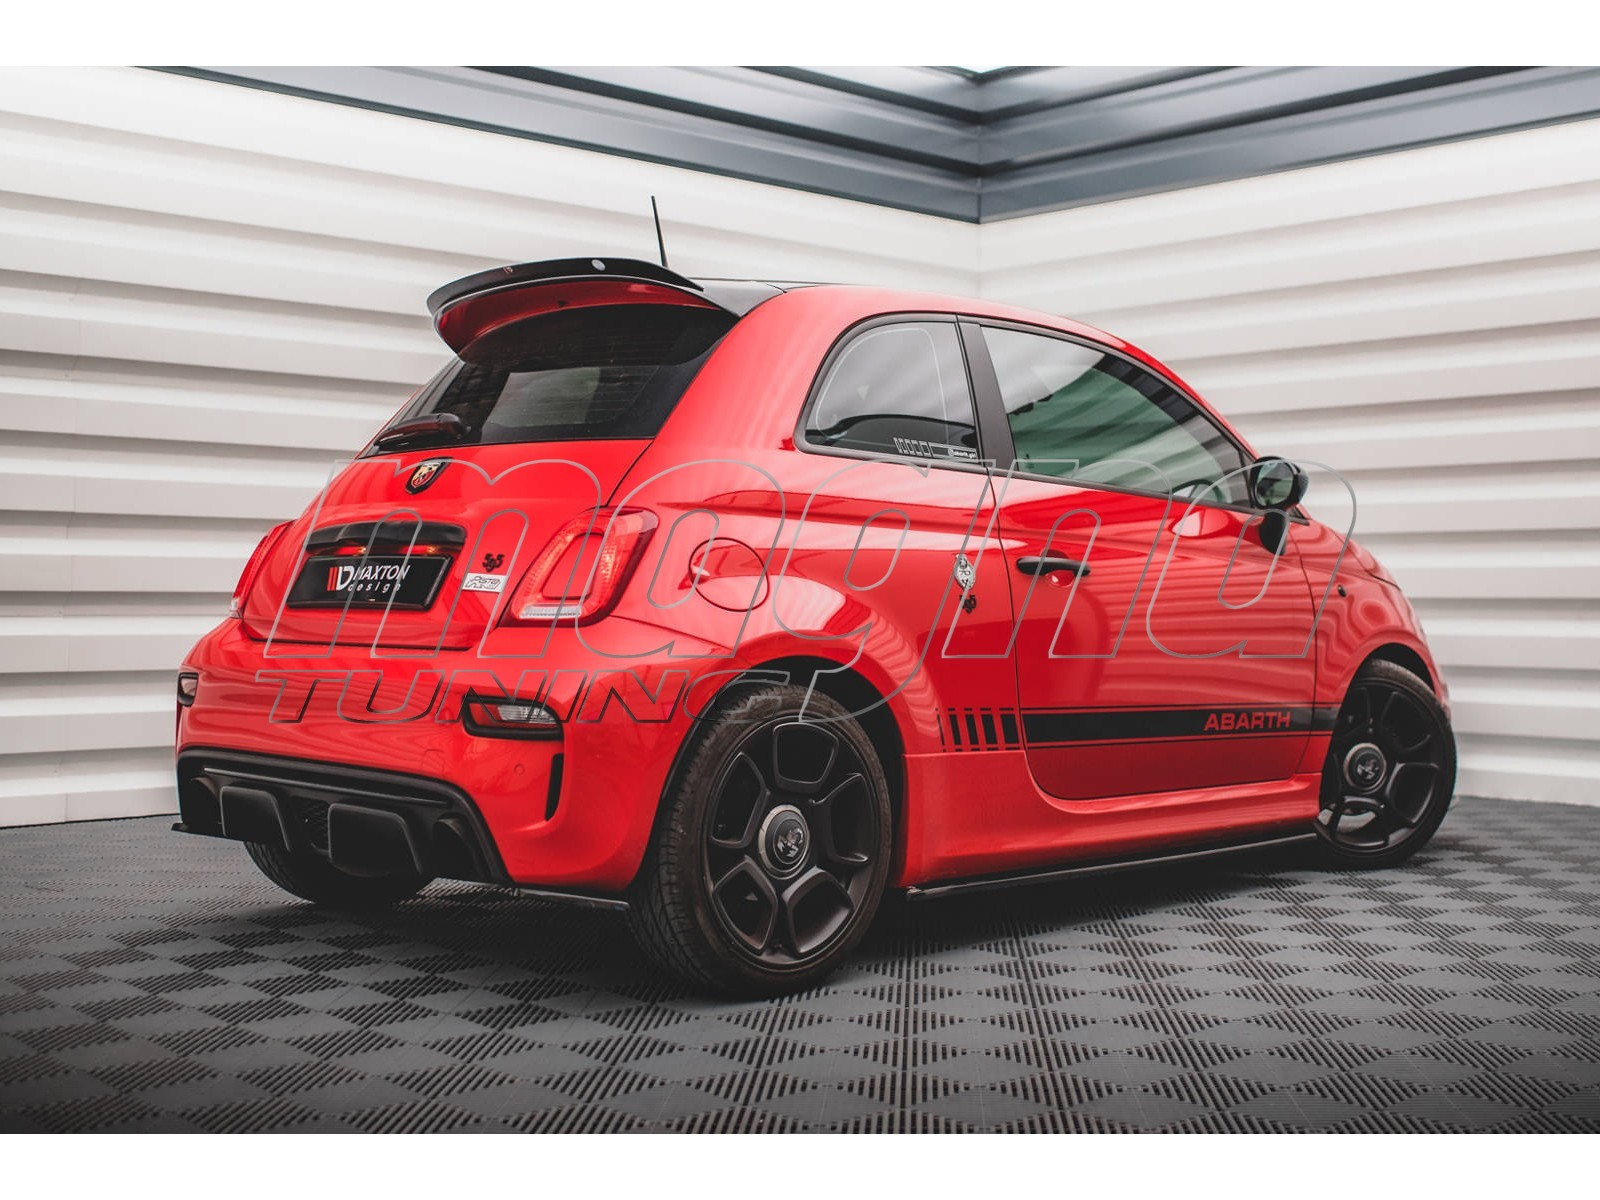 Fiat 500 Abarth Matrix Body Kit